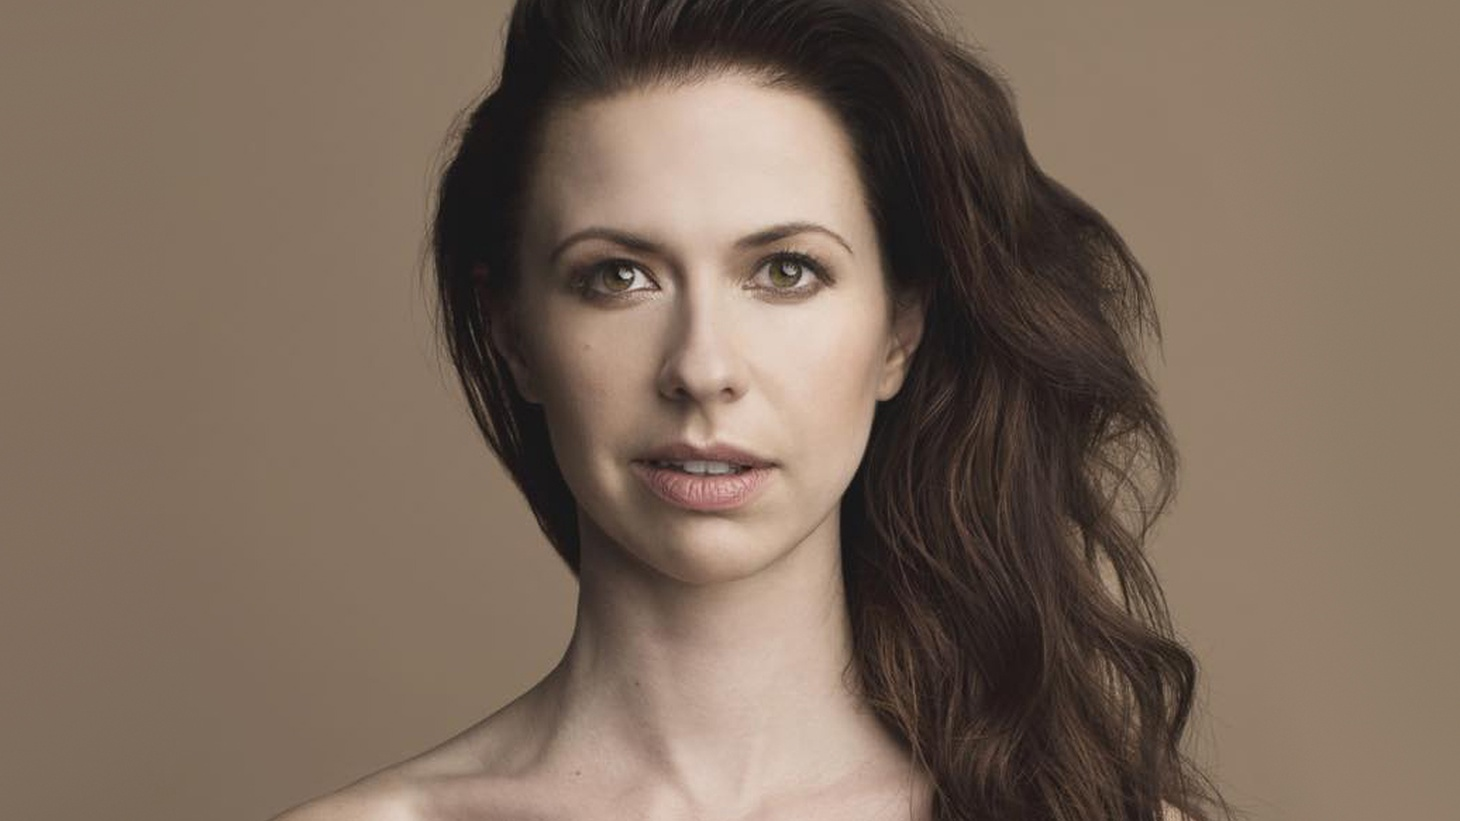 Formerly half of The Civil Wars, Williams explores an adventurous pop sound on her first solo album.